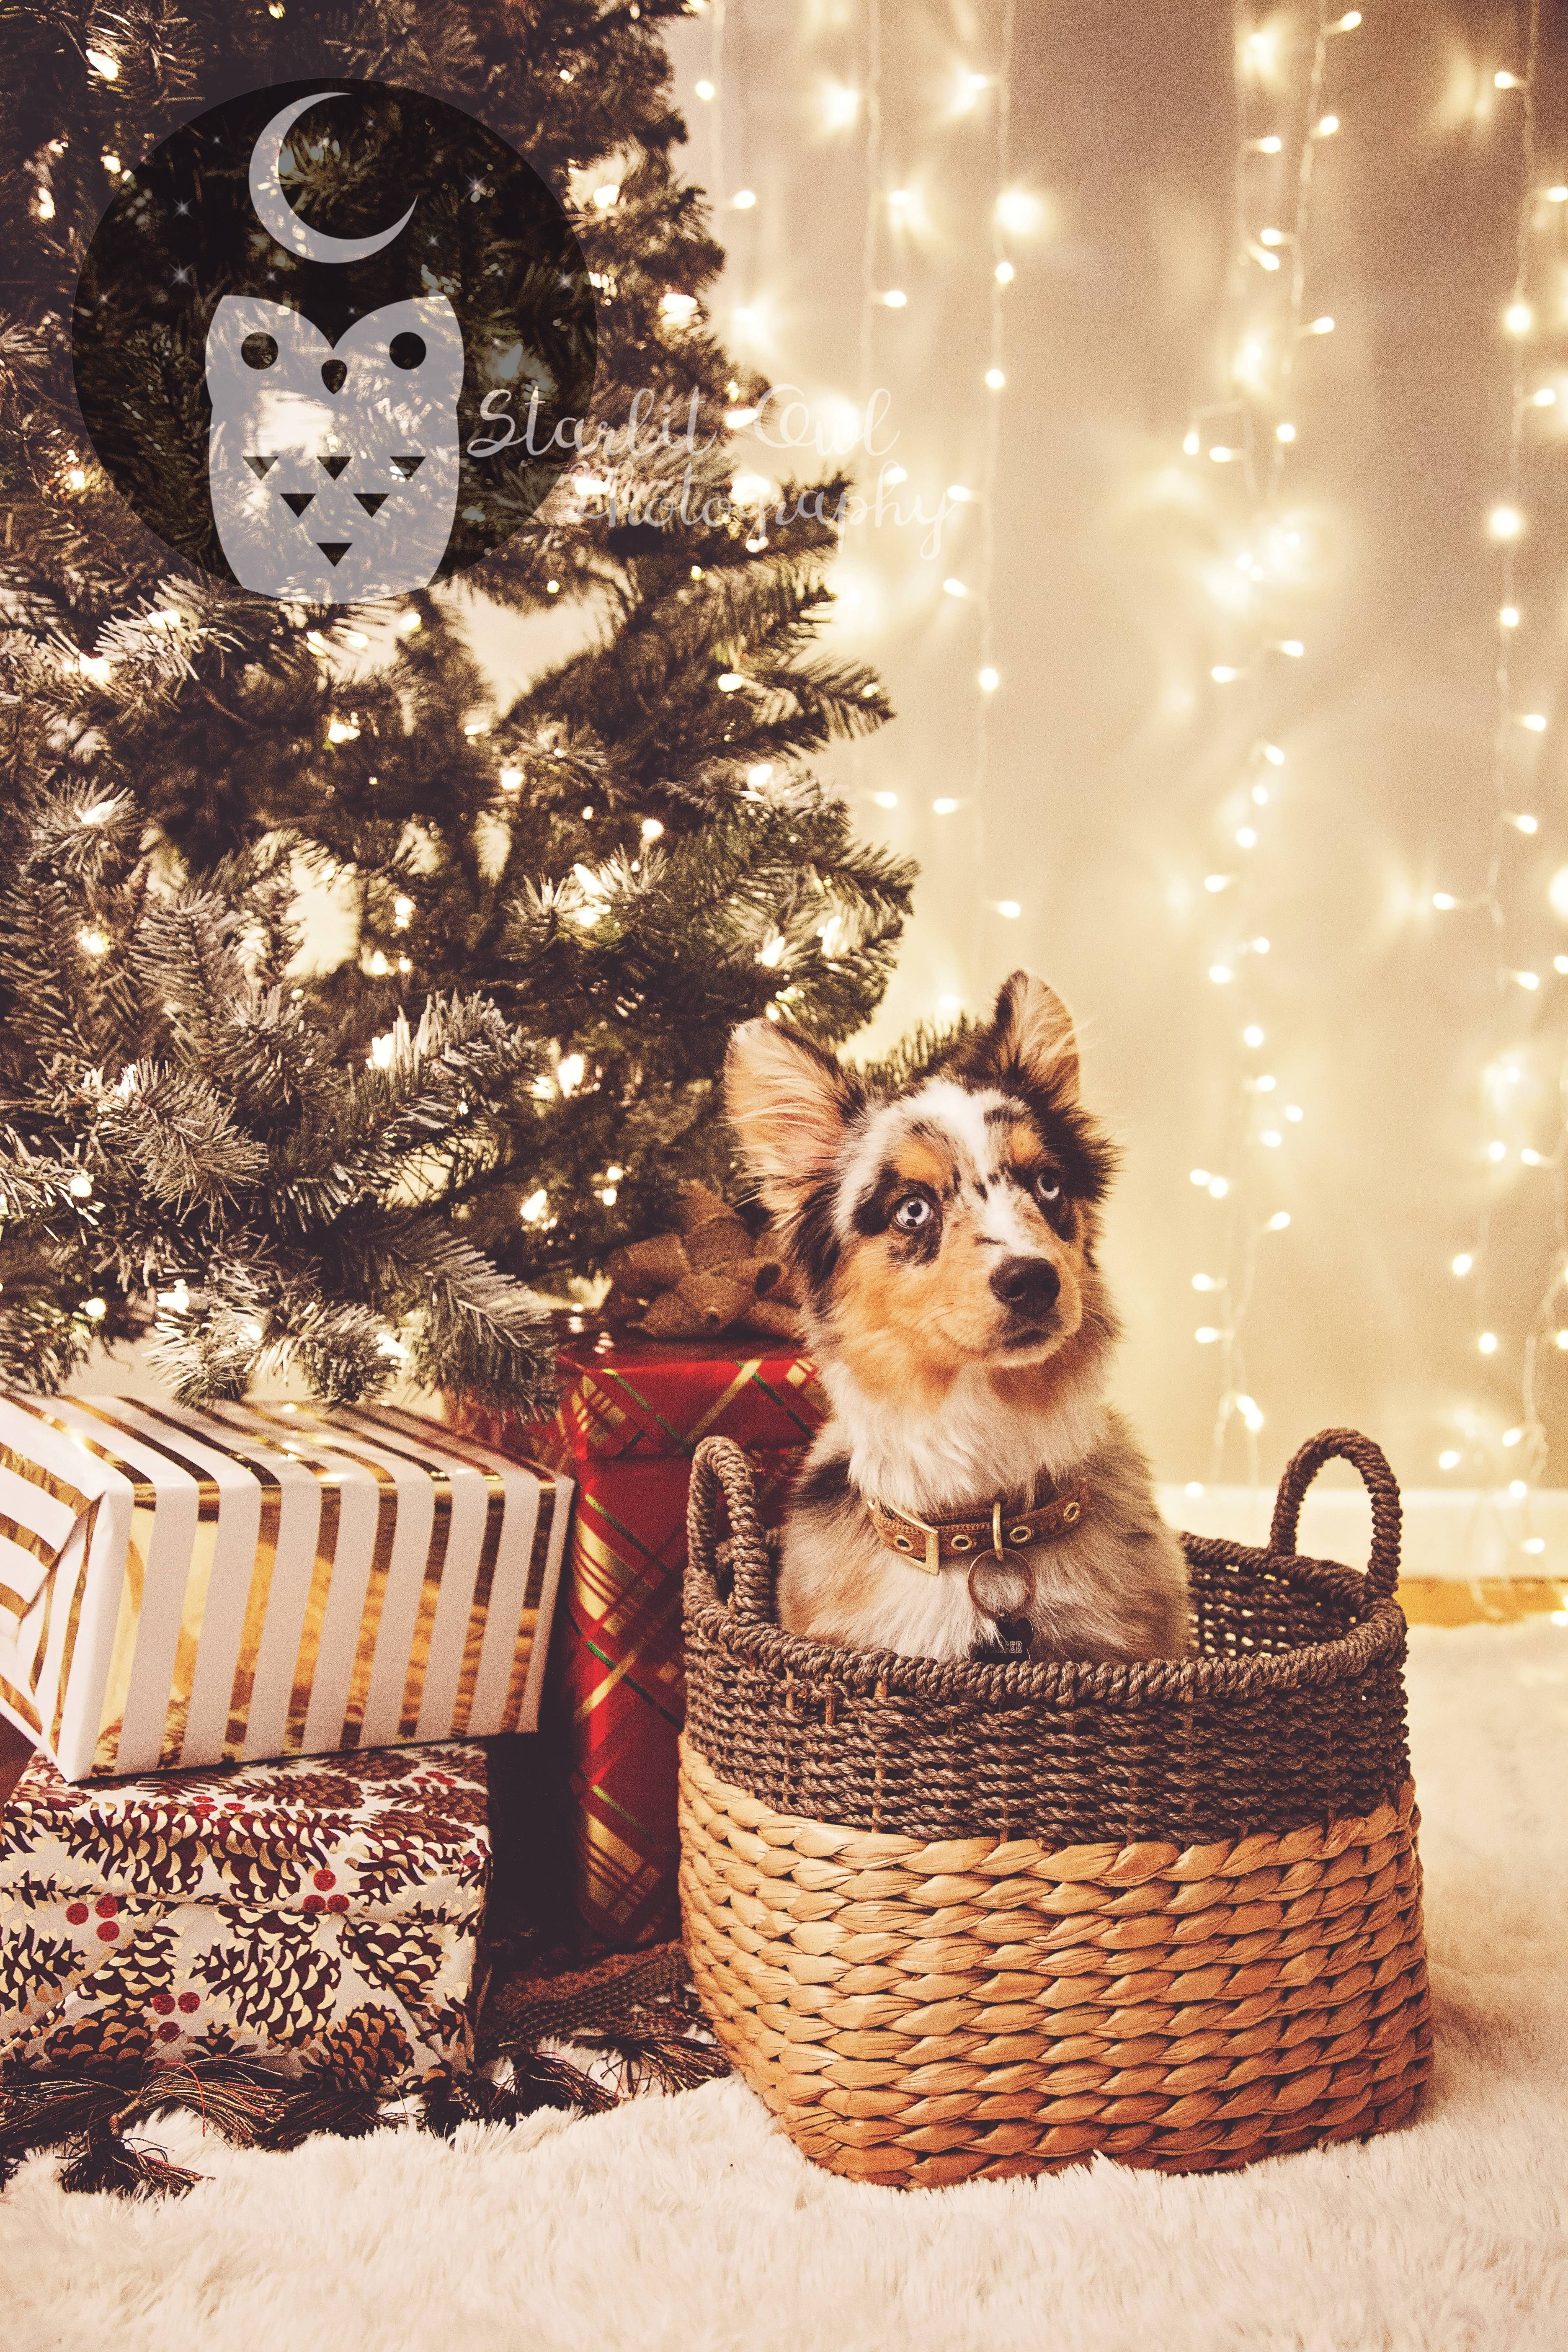 My Puppy S First Christmas Picture Http Ift Tt 2ganwsv Dog Christmas Photos Christmas Pet Photos Dog Christmas Pictures